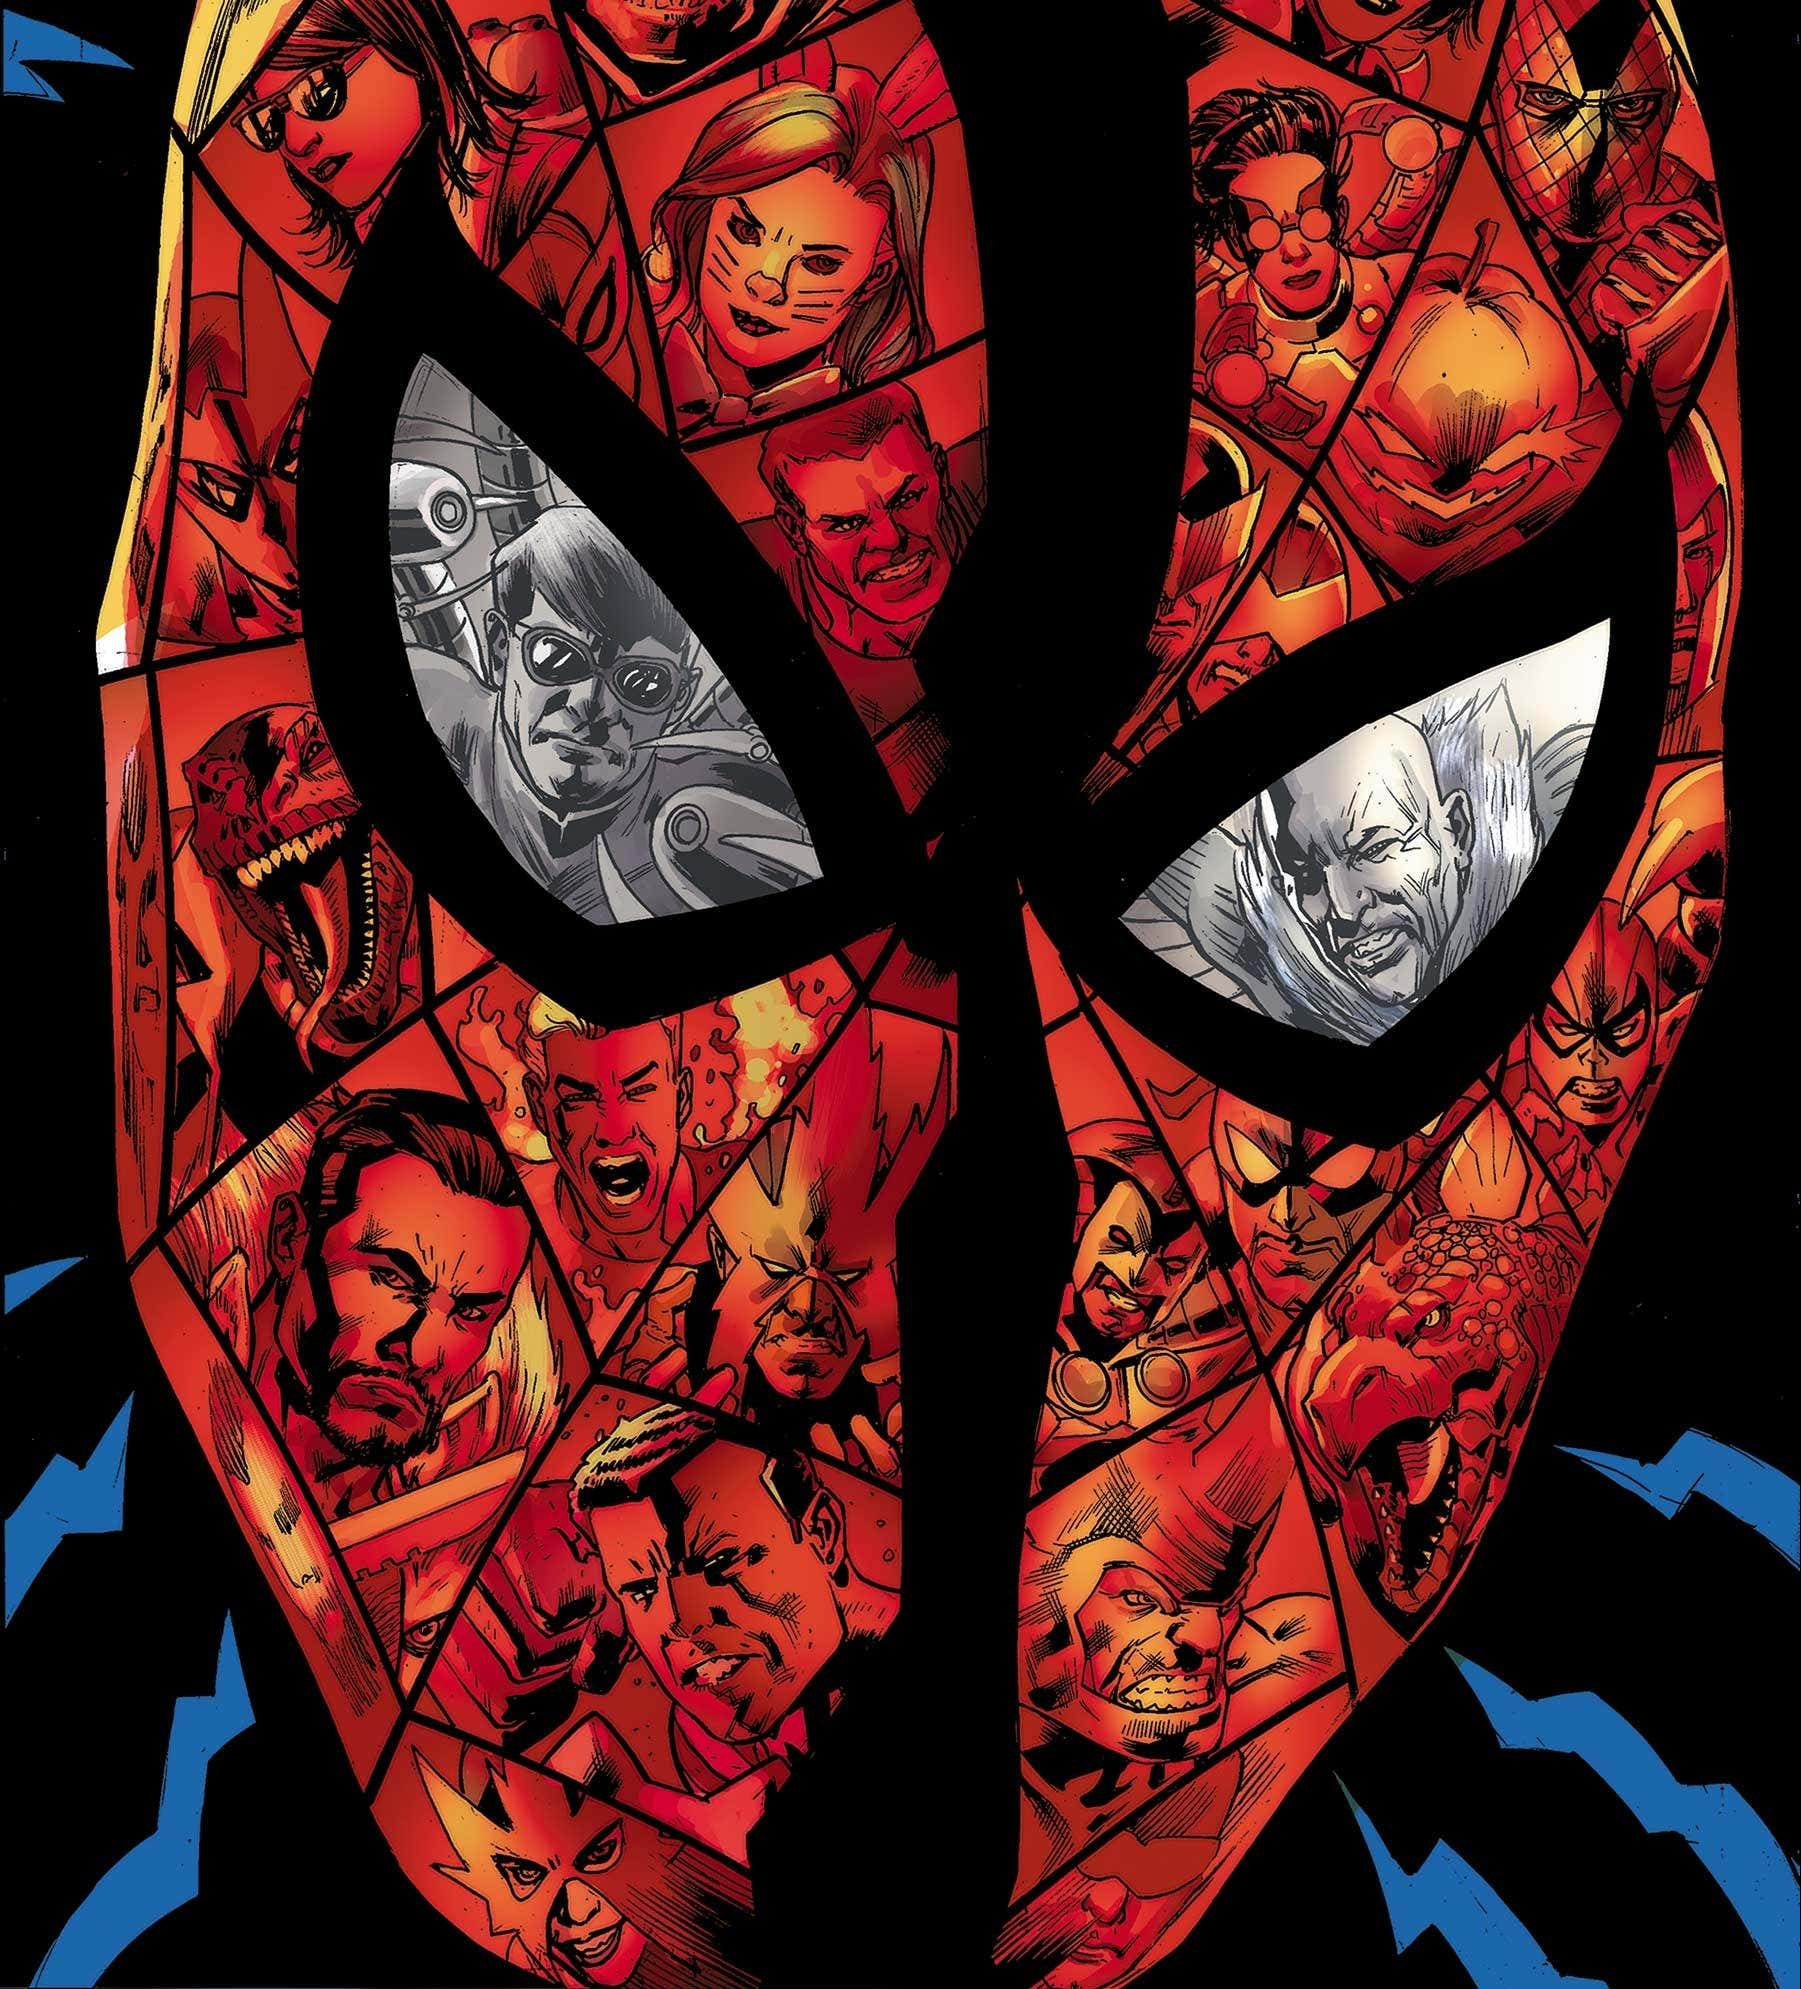 'Sinister War' #1 sees Spidey outnumbered, but not outclassed